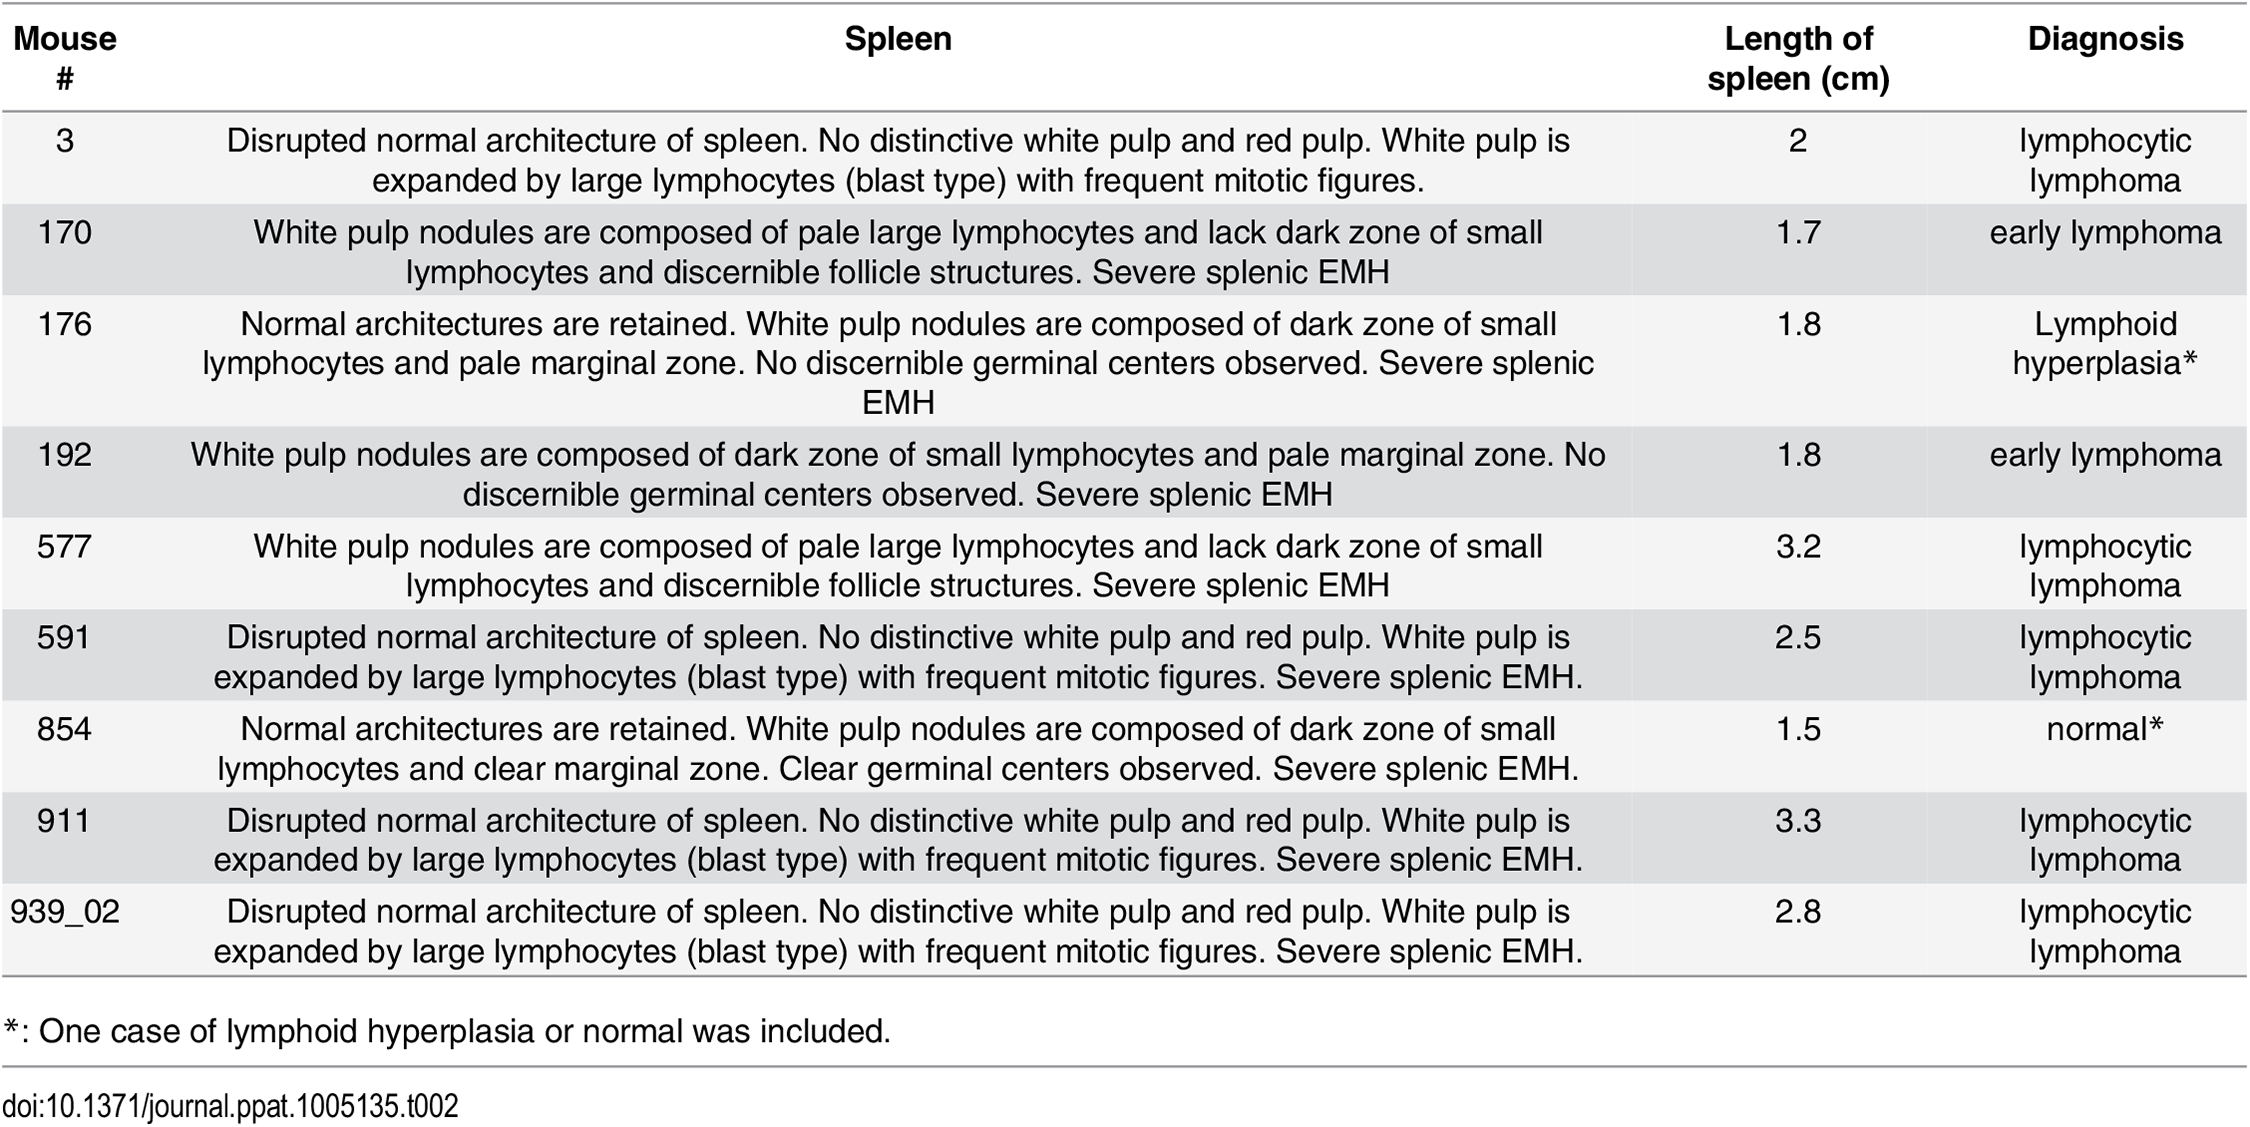 Pathology on spleen from Myc/latency mice diagnosed with lymphoma.